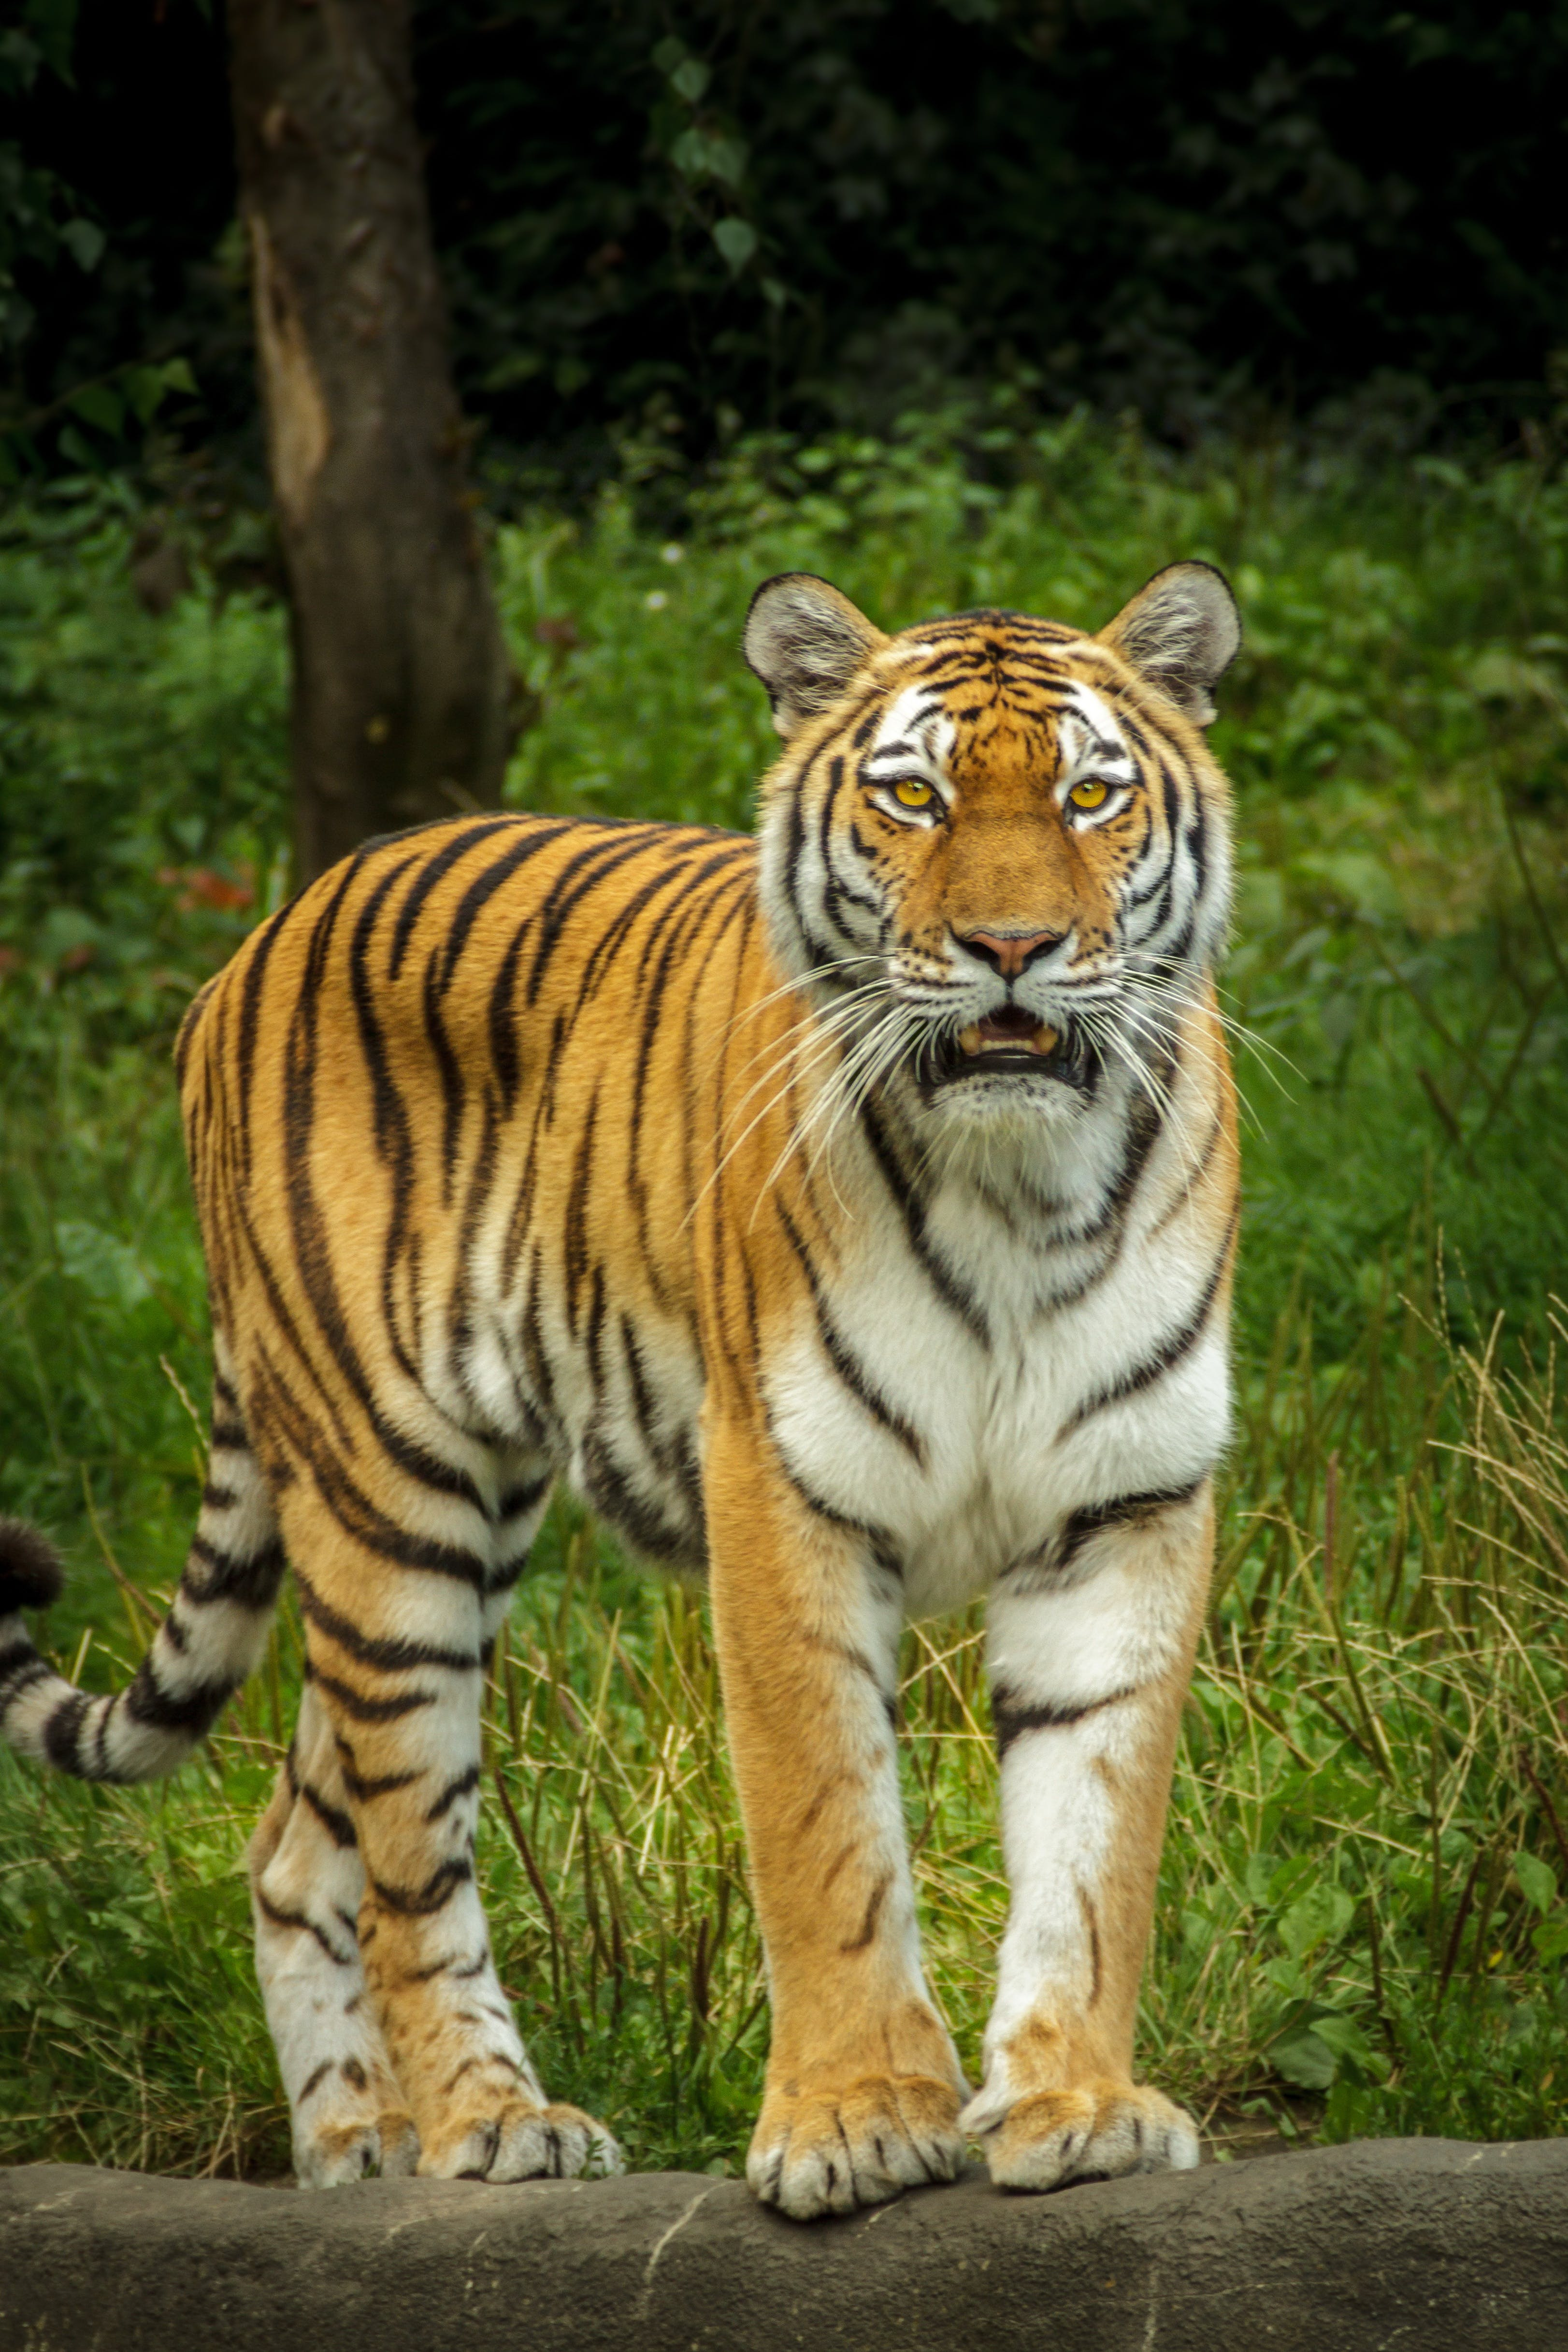 Tiger in Green Grass Near the Tree during Daytime